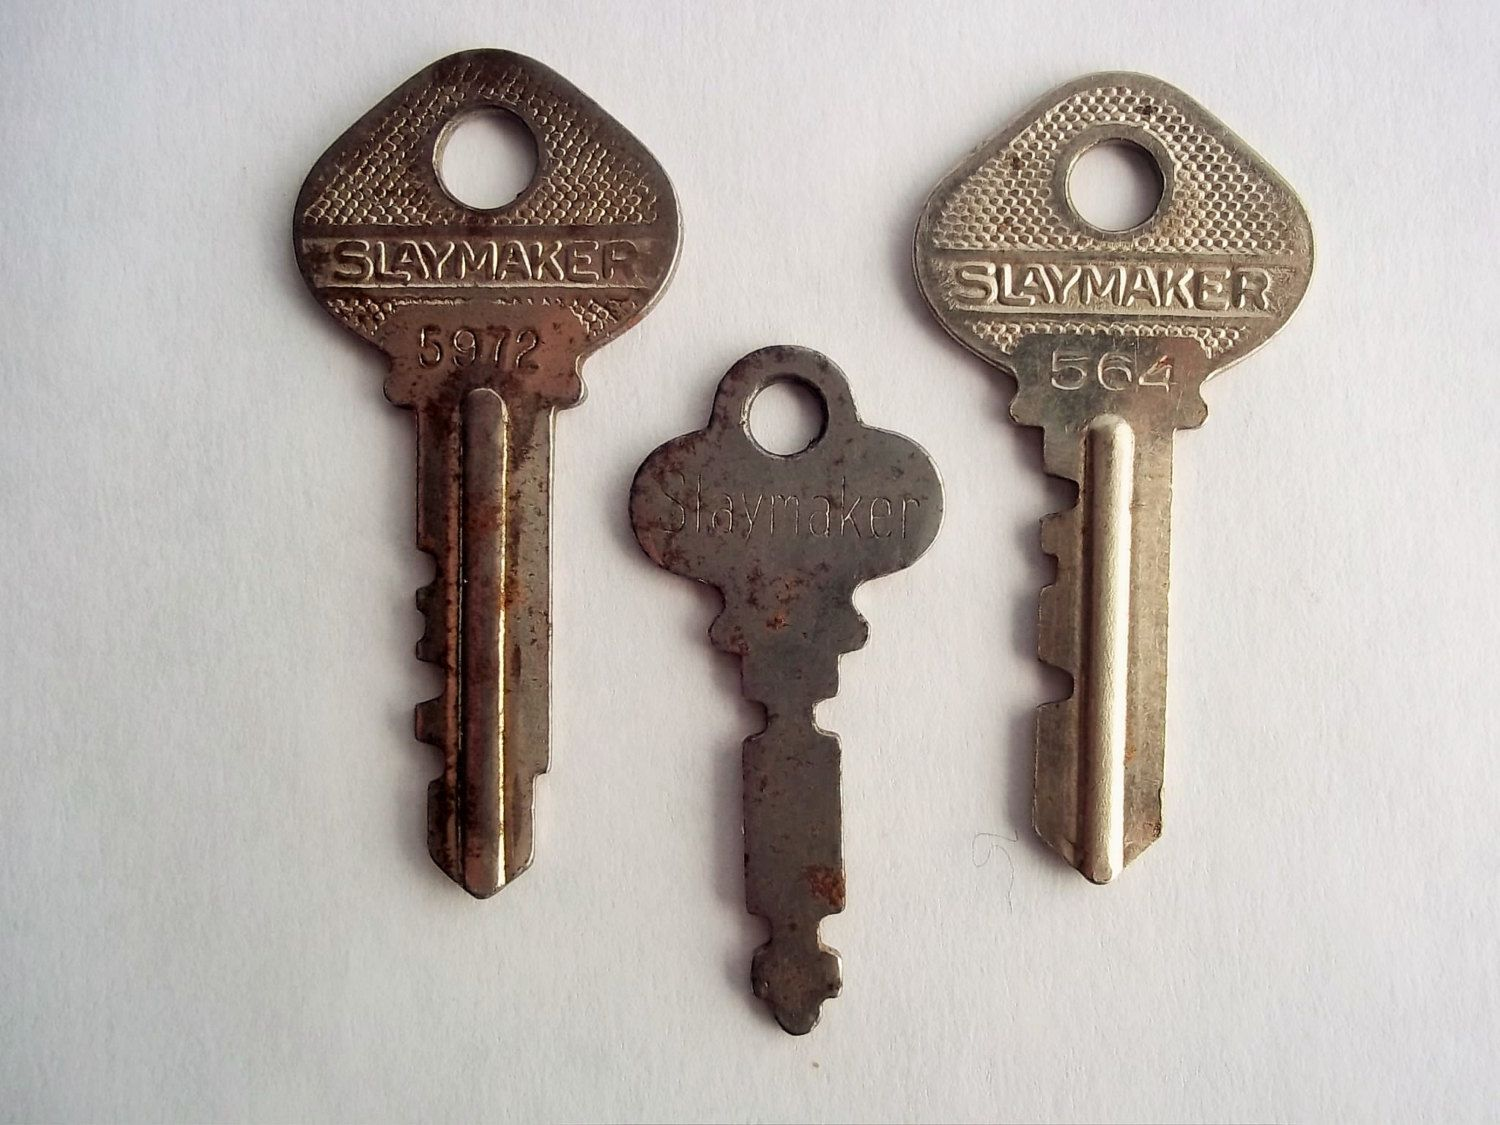 Three 3 Slaymaker Keys With Different Shapes Sizes Condition Vintage Keys Different Shapes Shapes